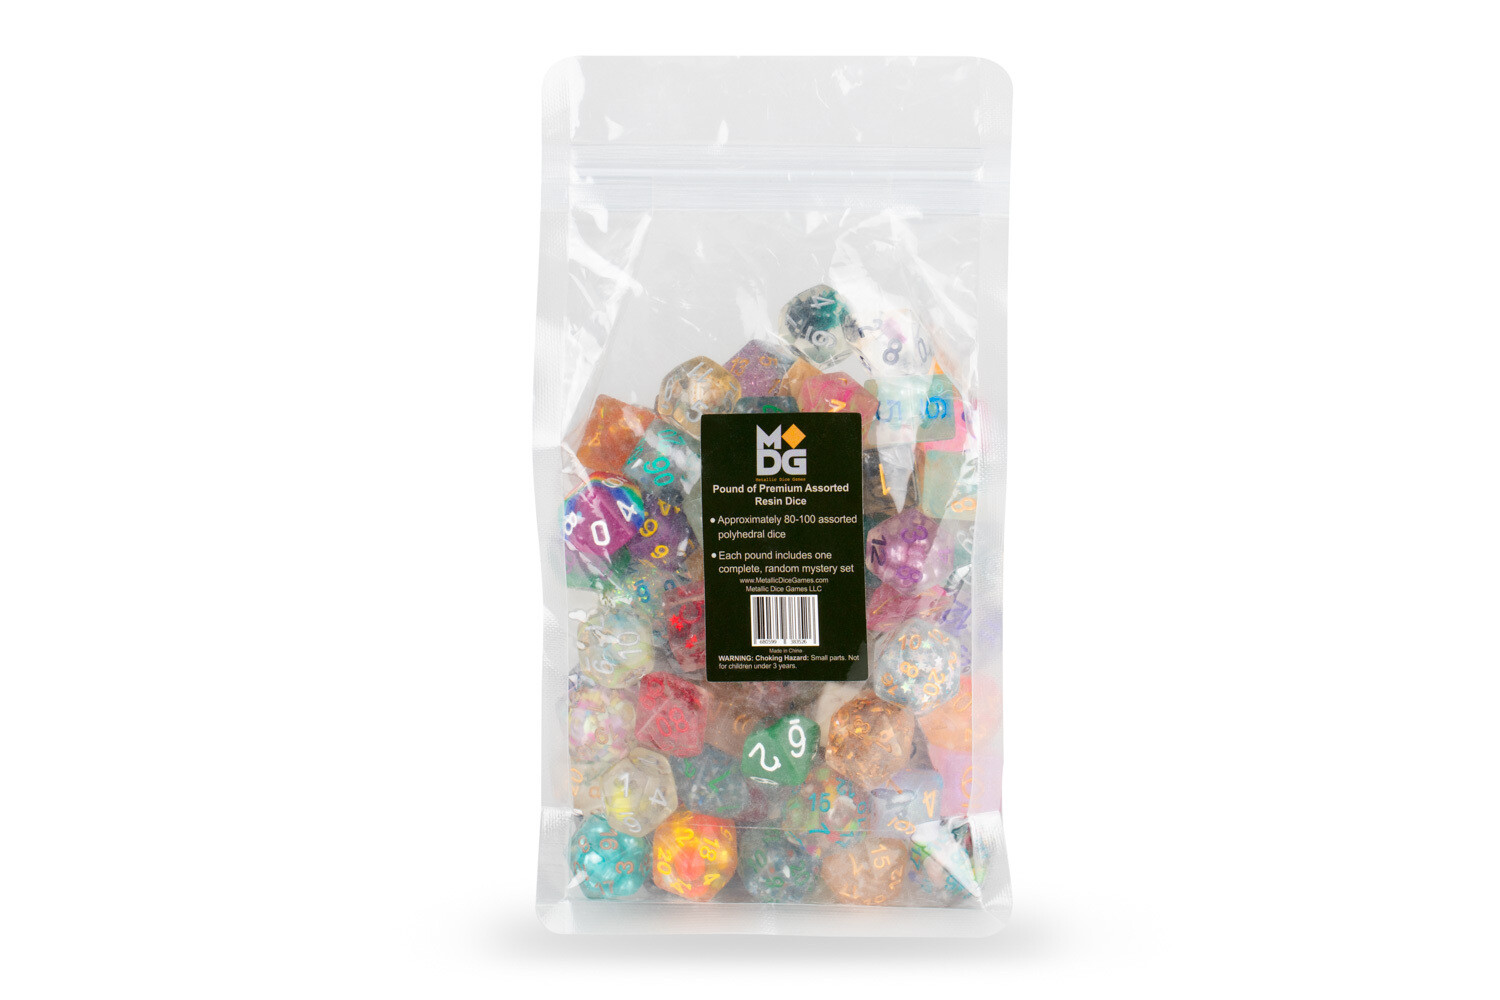 Pound of Premium Assorted Resin Dice RPG Tabletop Gaming Roleplay Board Card